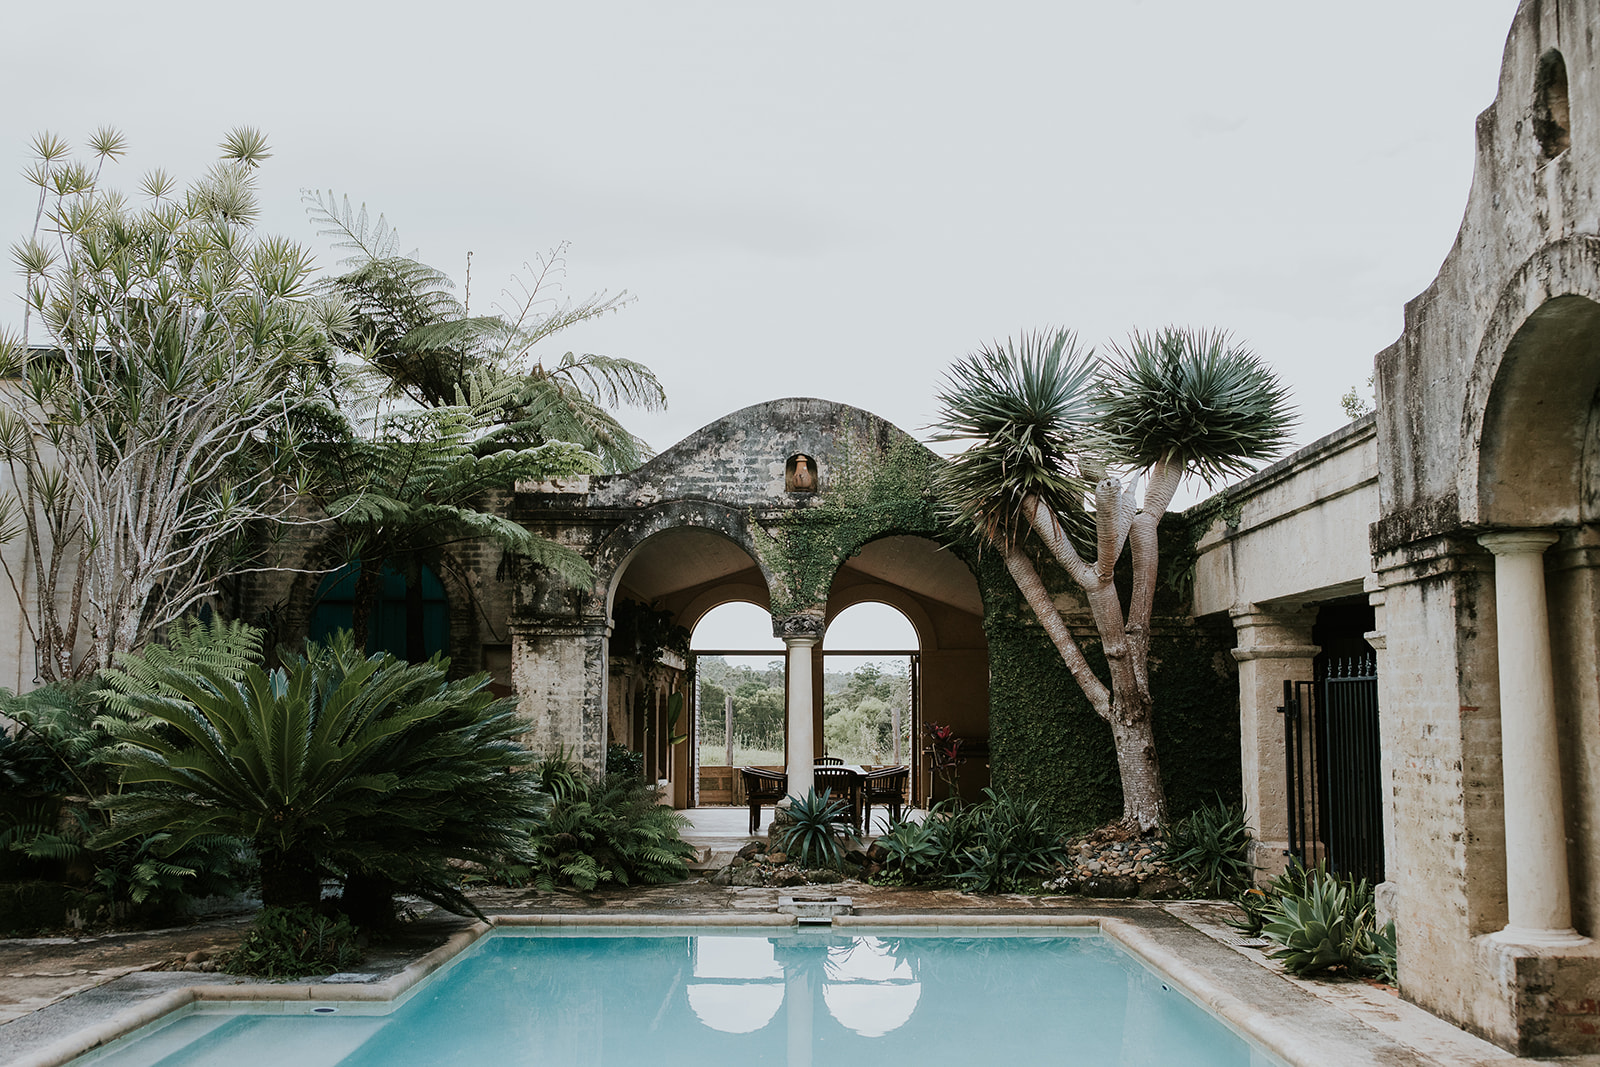 Image of rustic villa / building pool area.